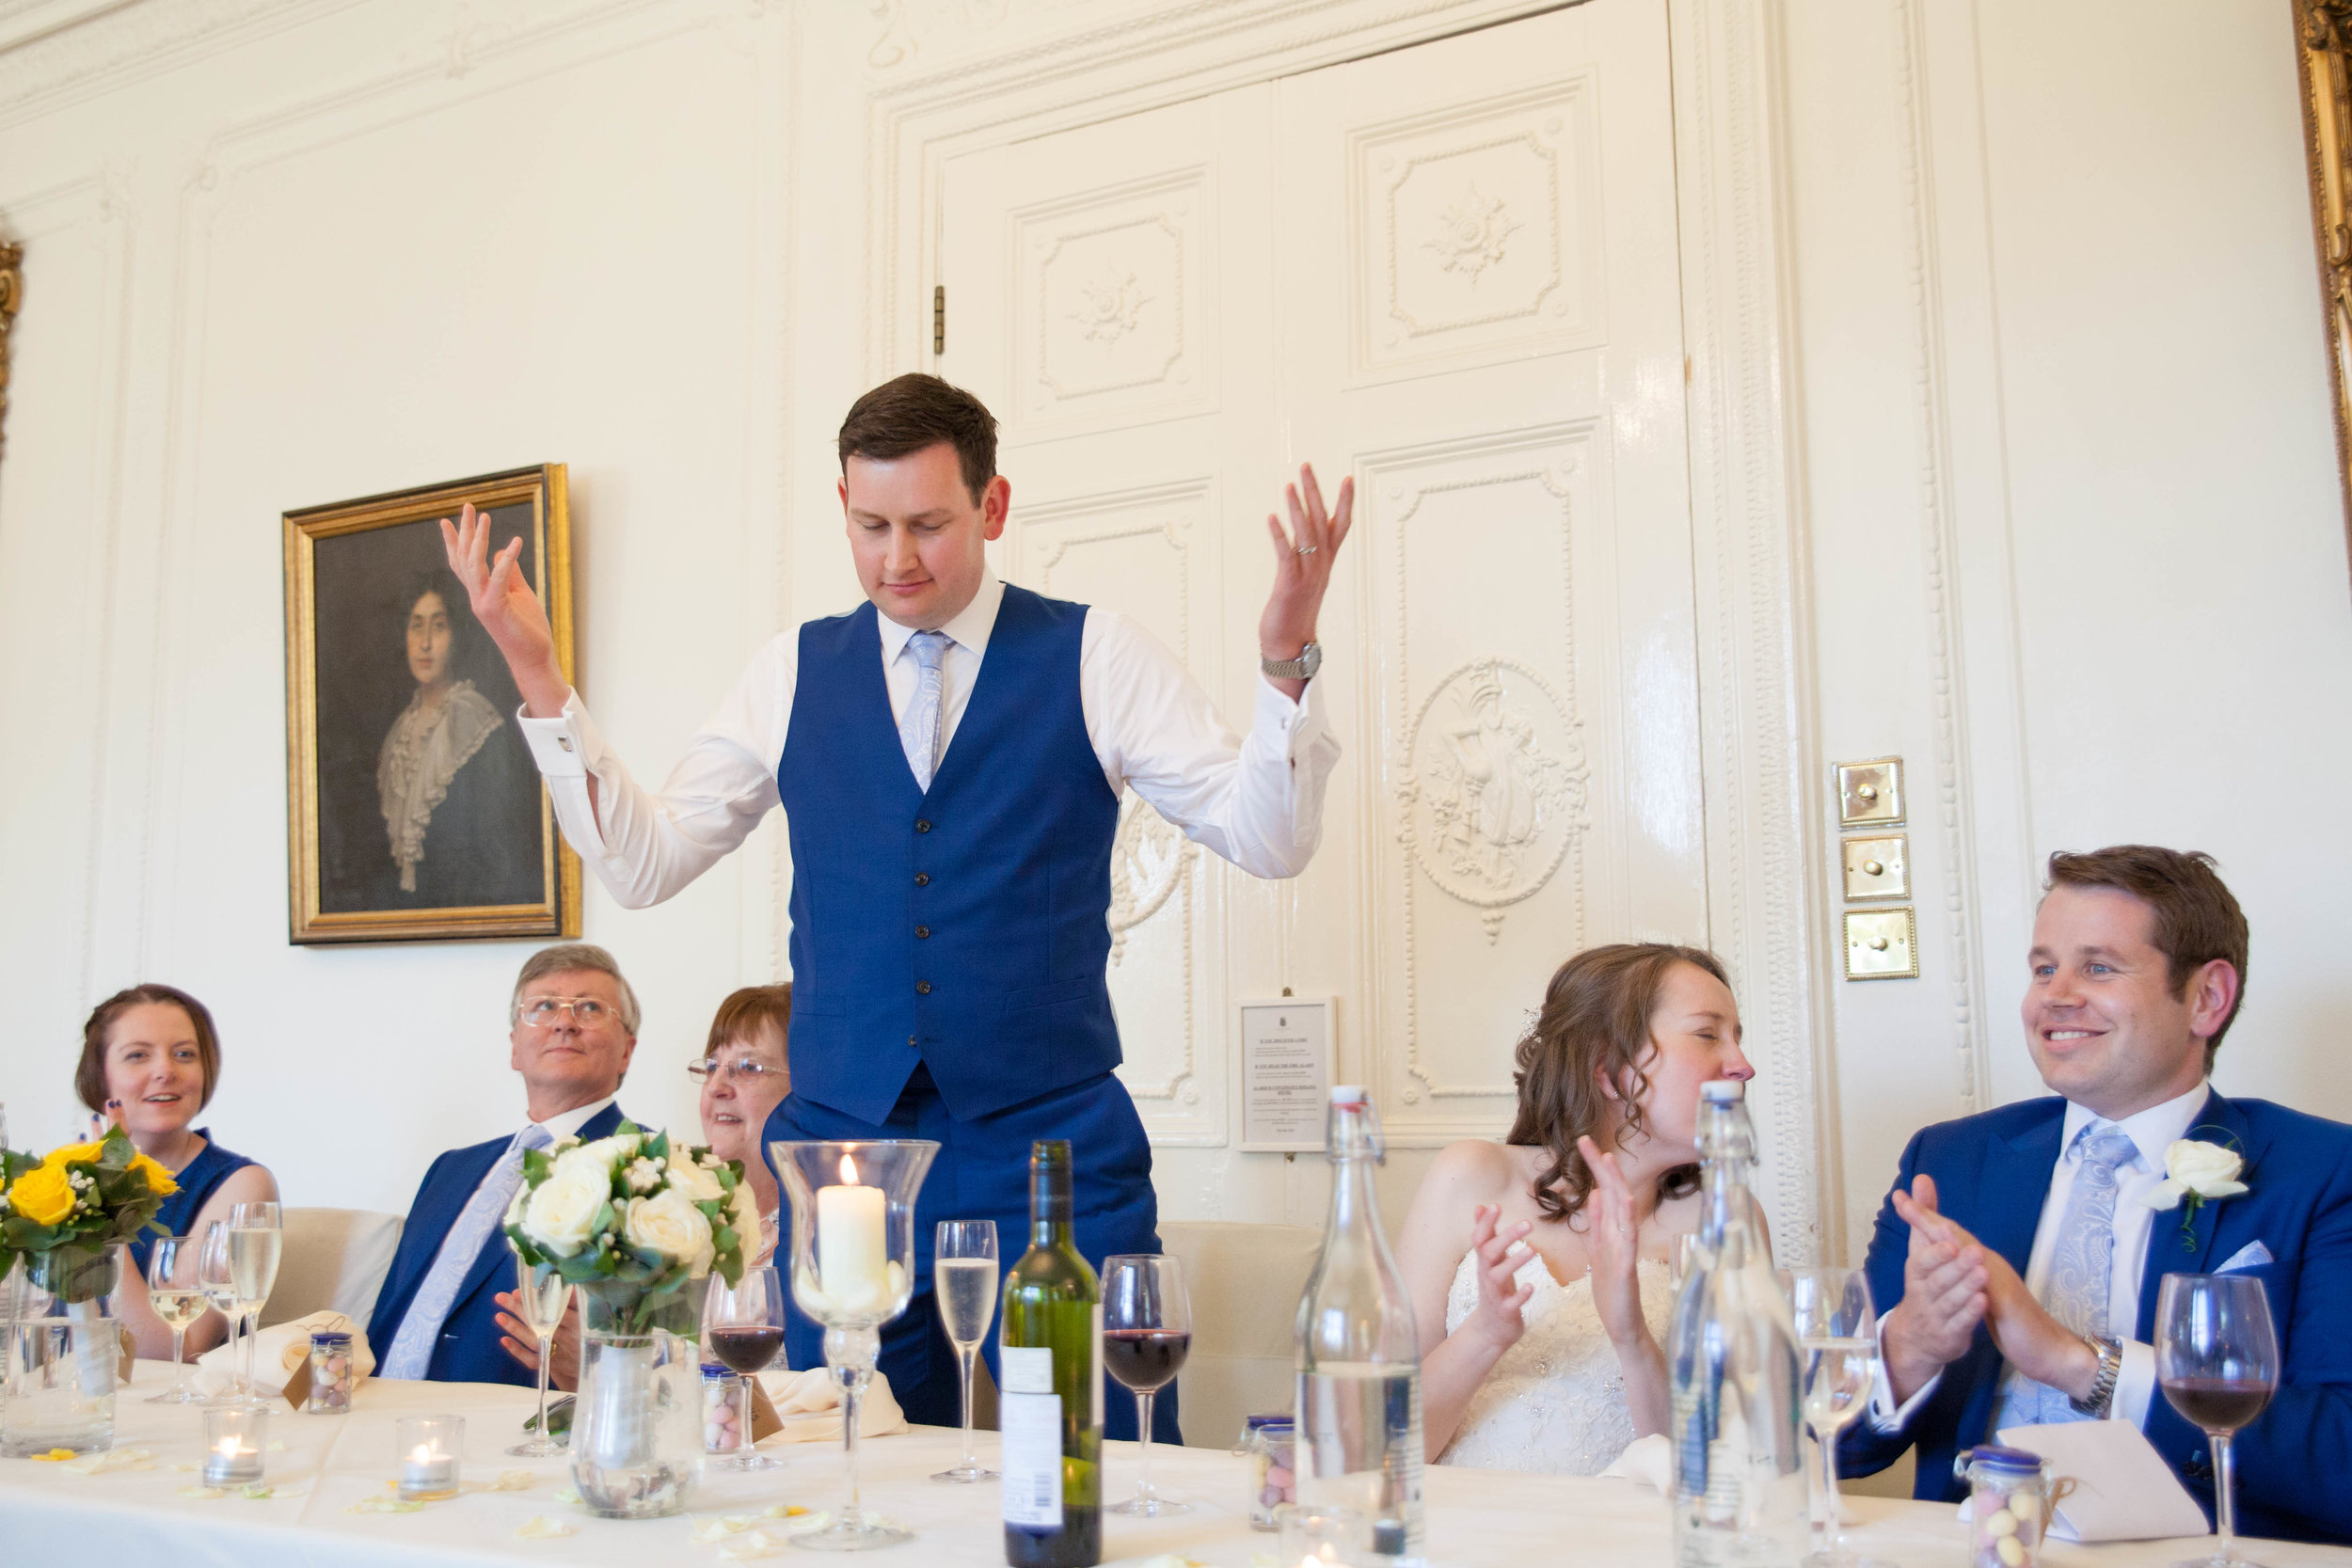 NLPhotography_Taplow_House-Wedding_Photographer_Emily&Alan_C-483.jpg